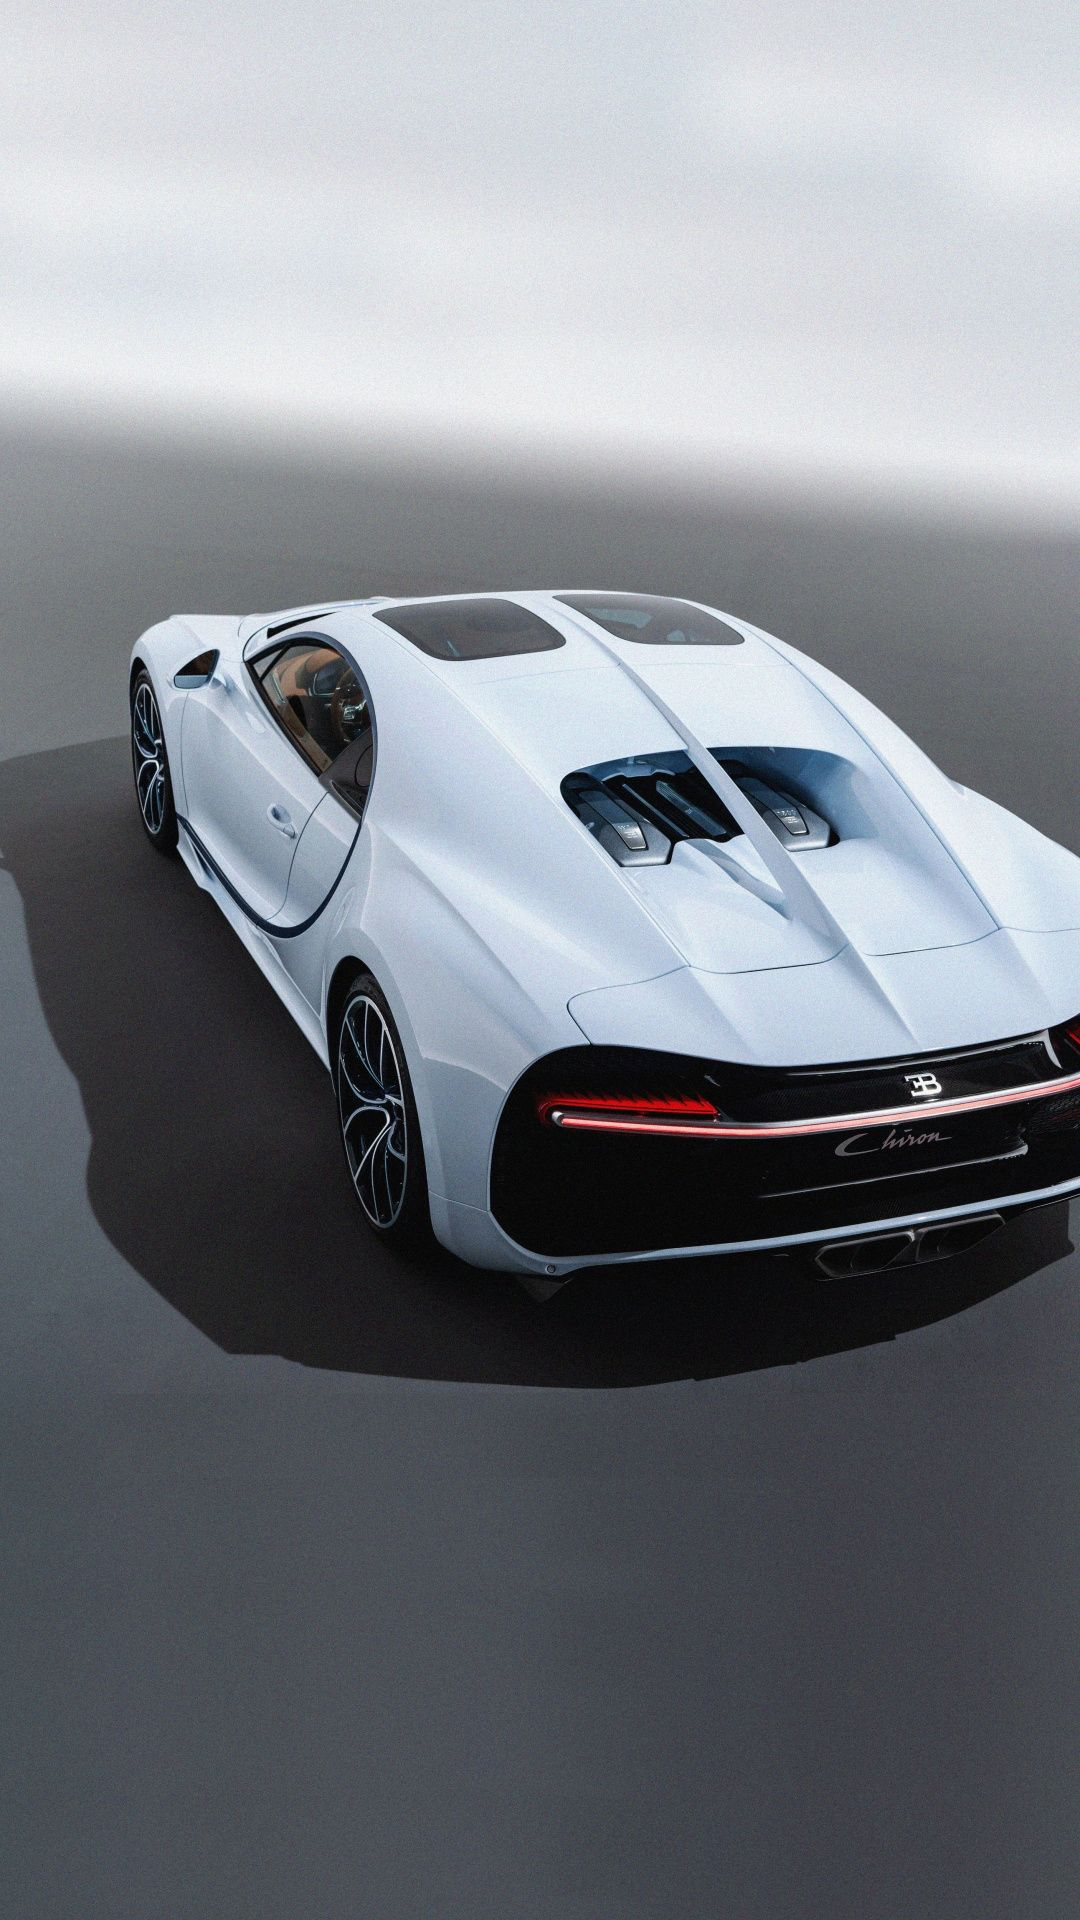 Bugatti Chiron Sky View Glass Roof Luxury Car 1080x1920